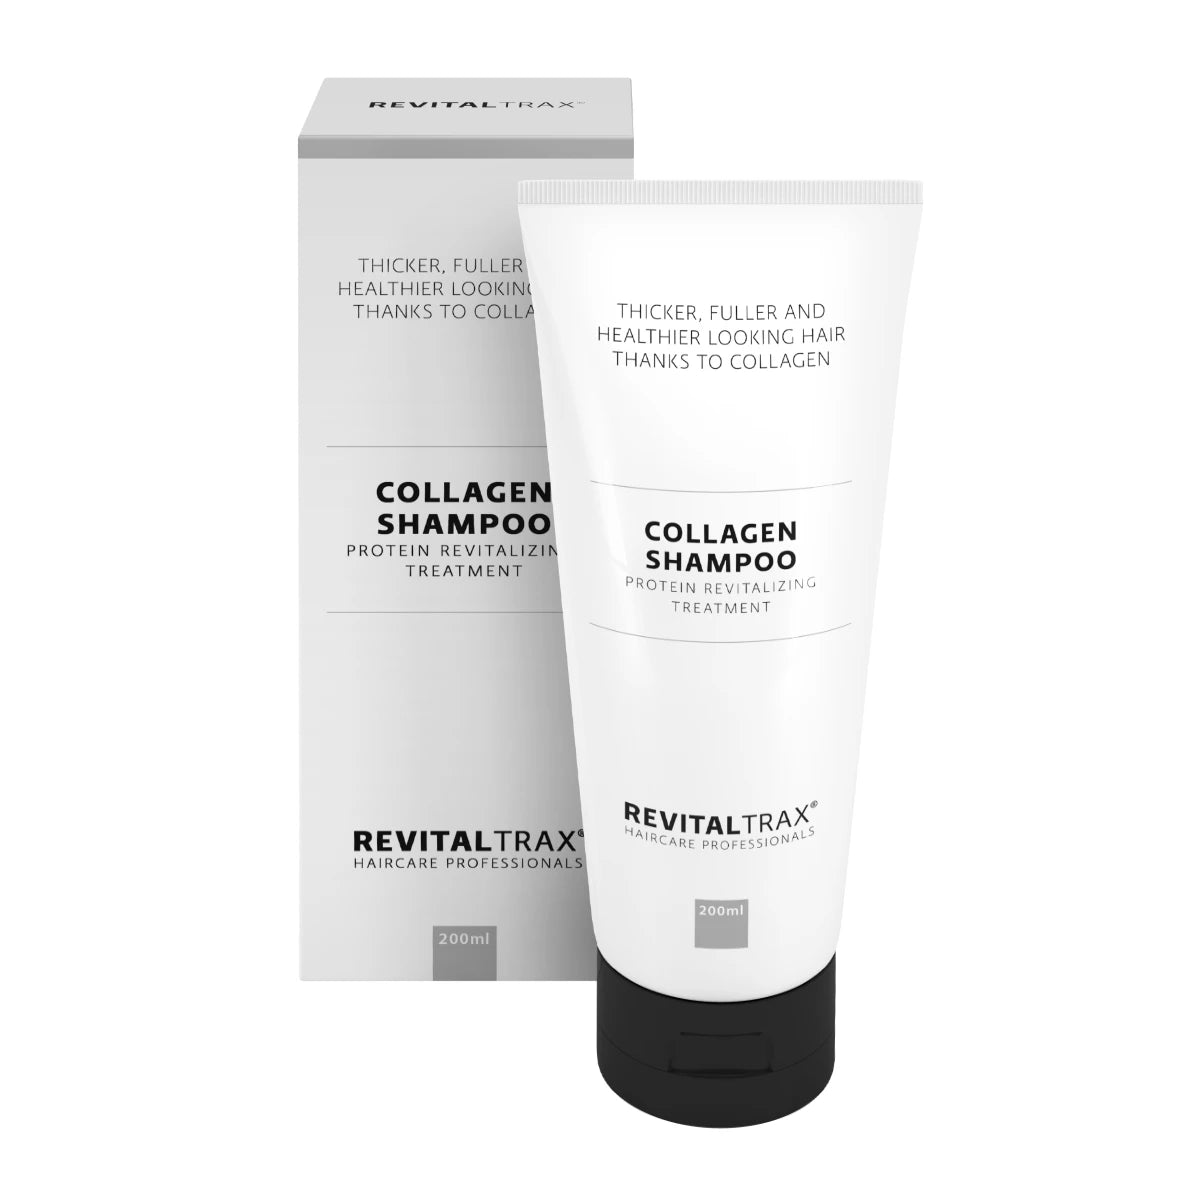 RevitalTrax Collagen Shampoo.